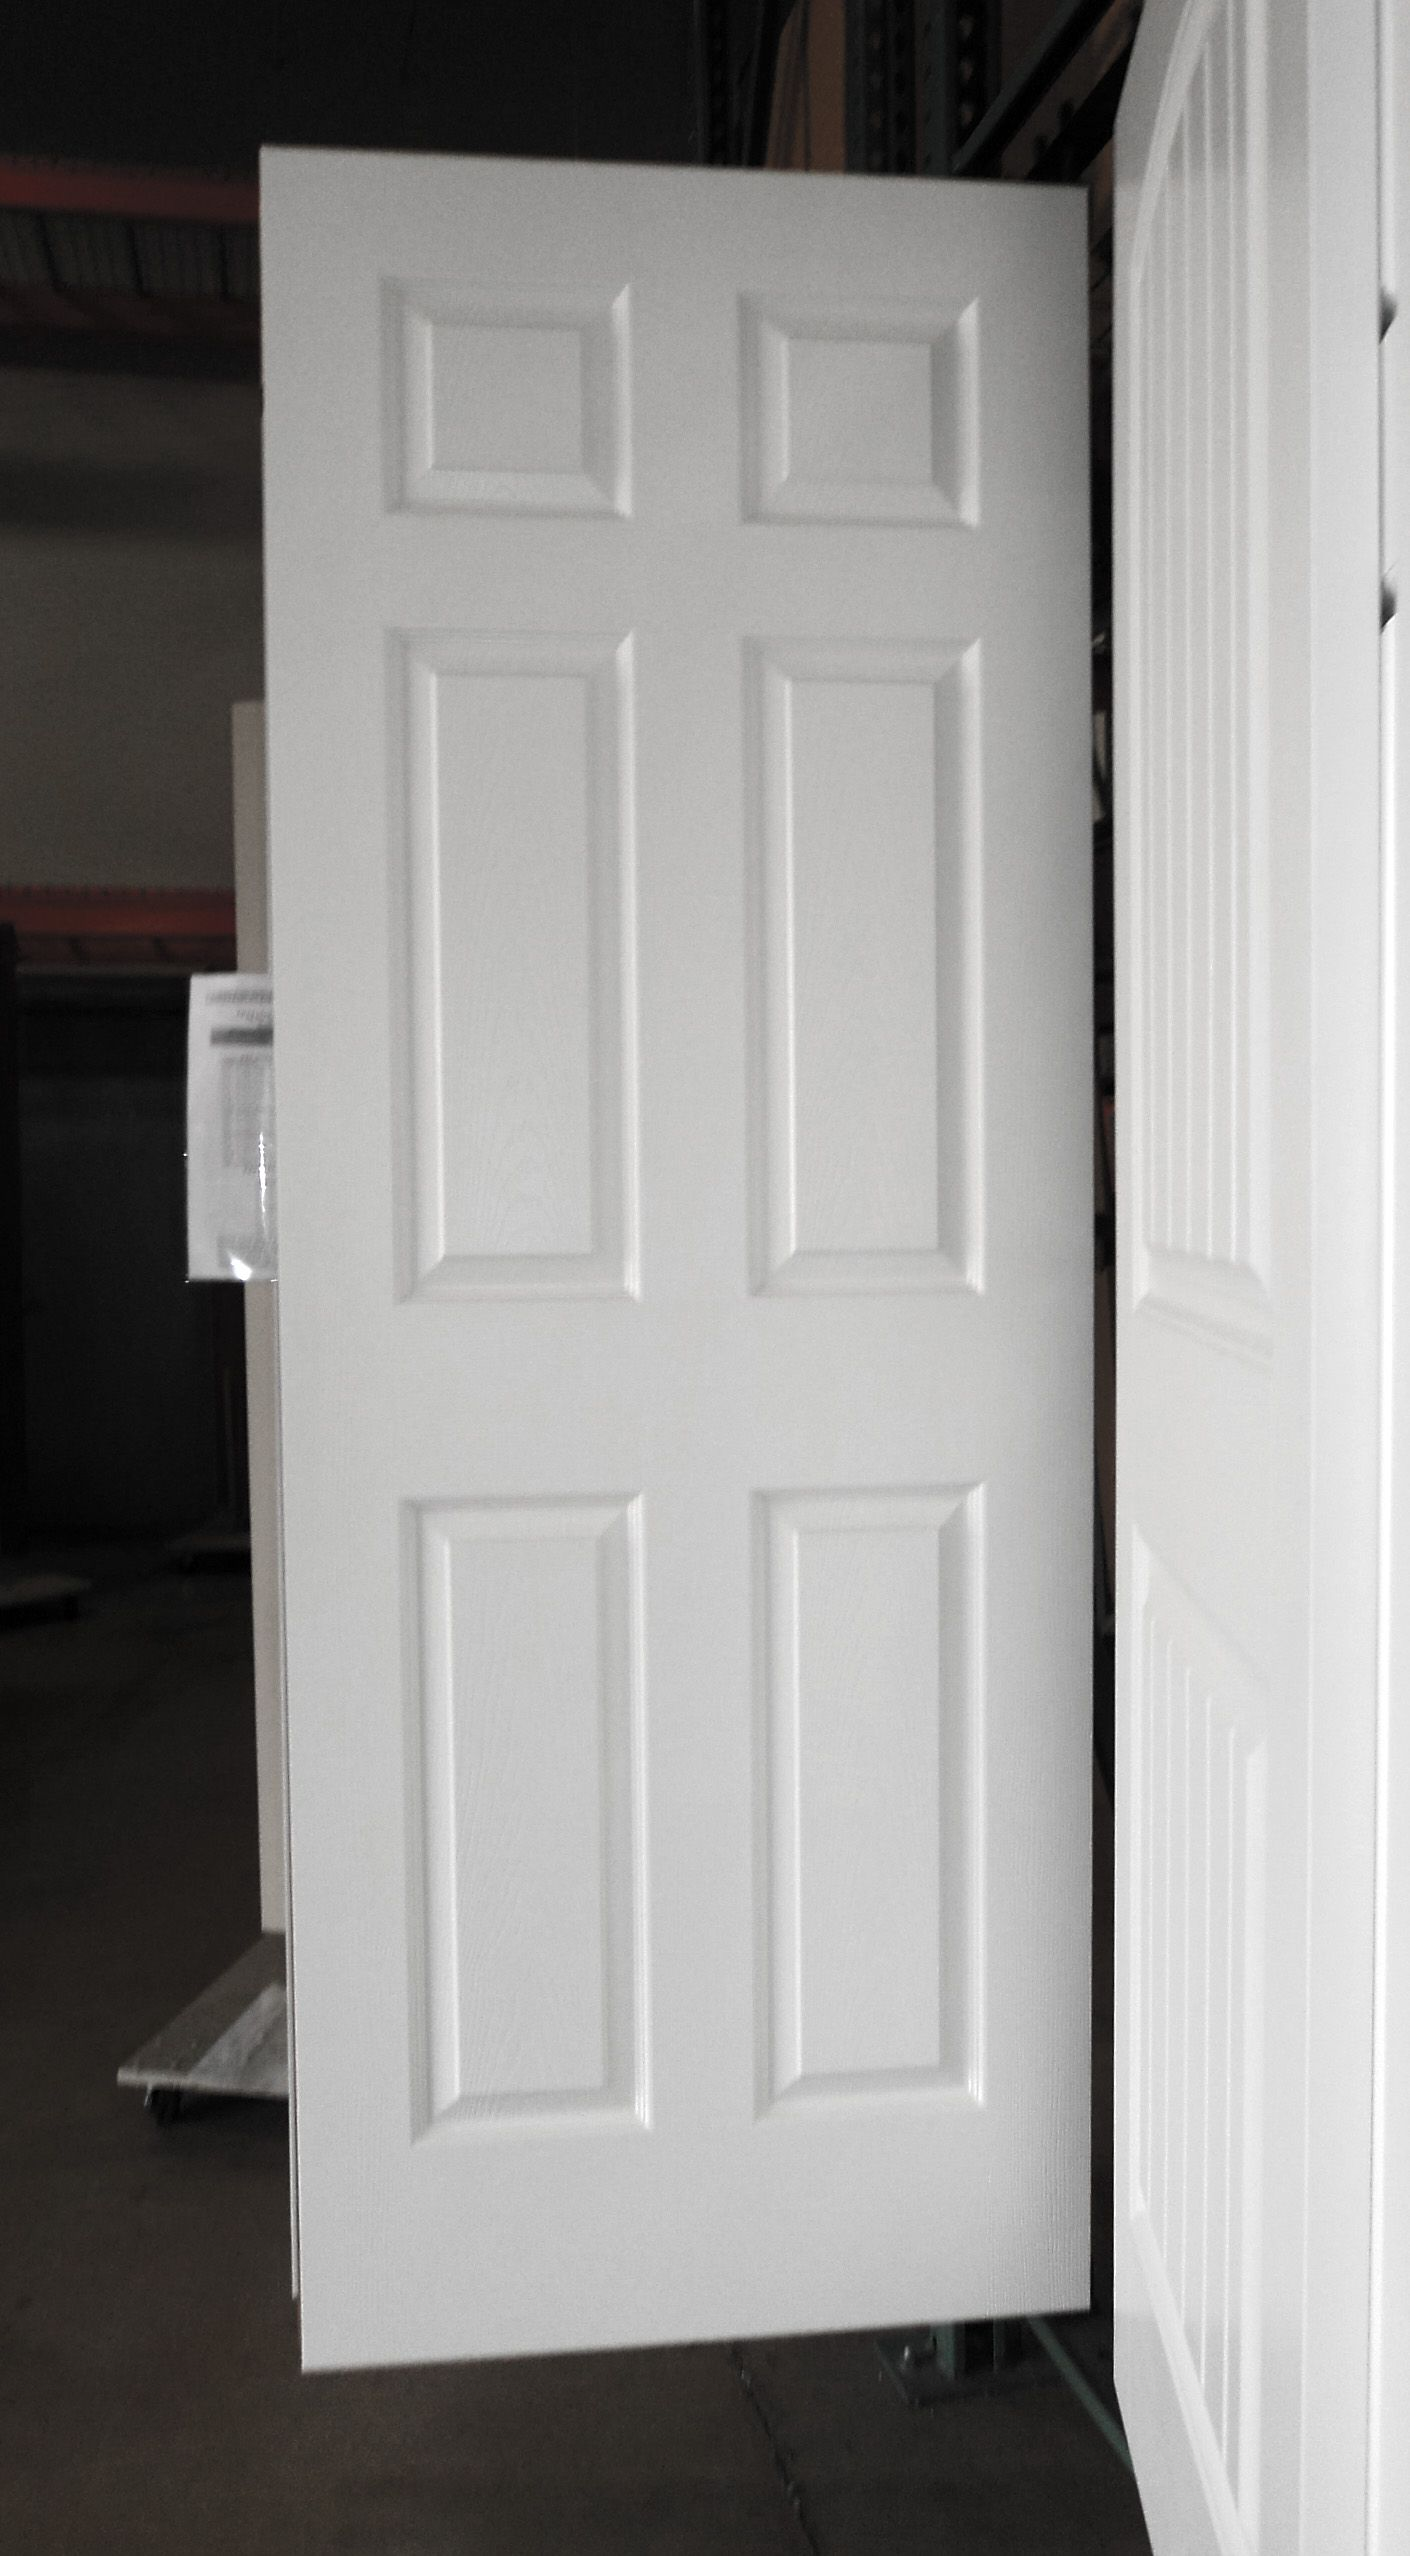 interior door texture. 6 Panel Painted White Textured Masonite Hollow Core Interior Door Texture